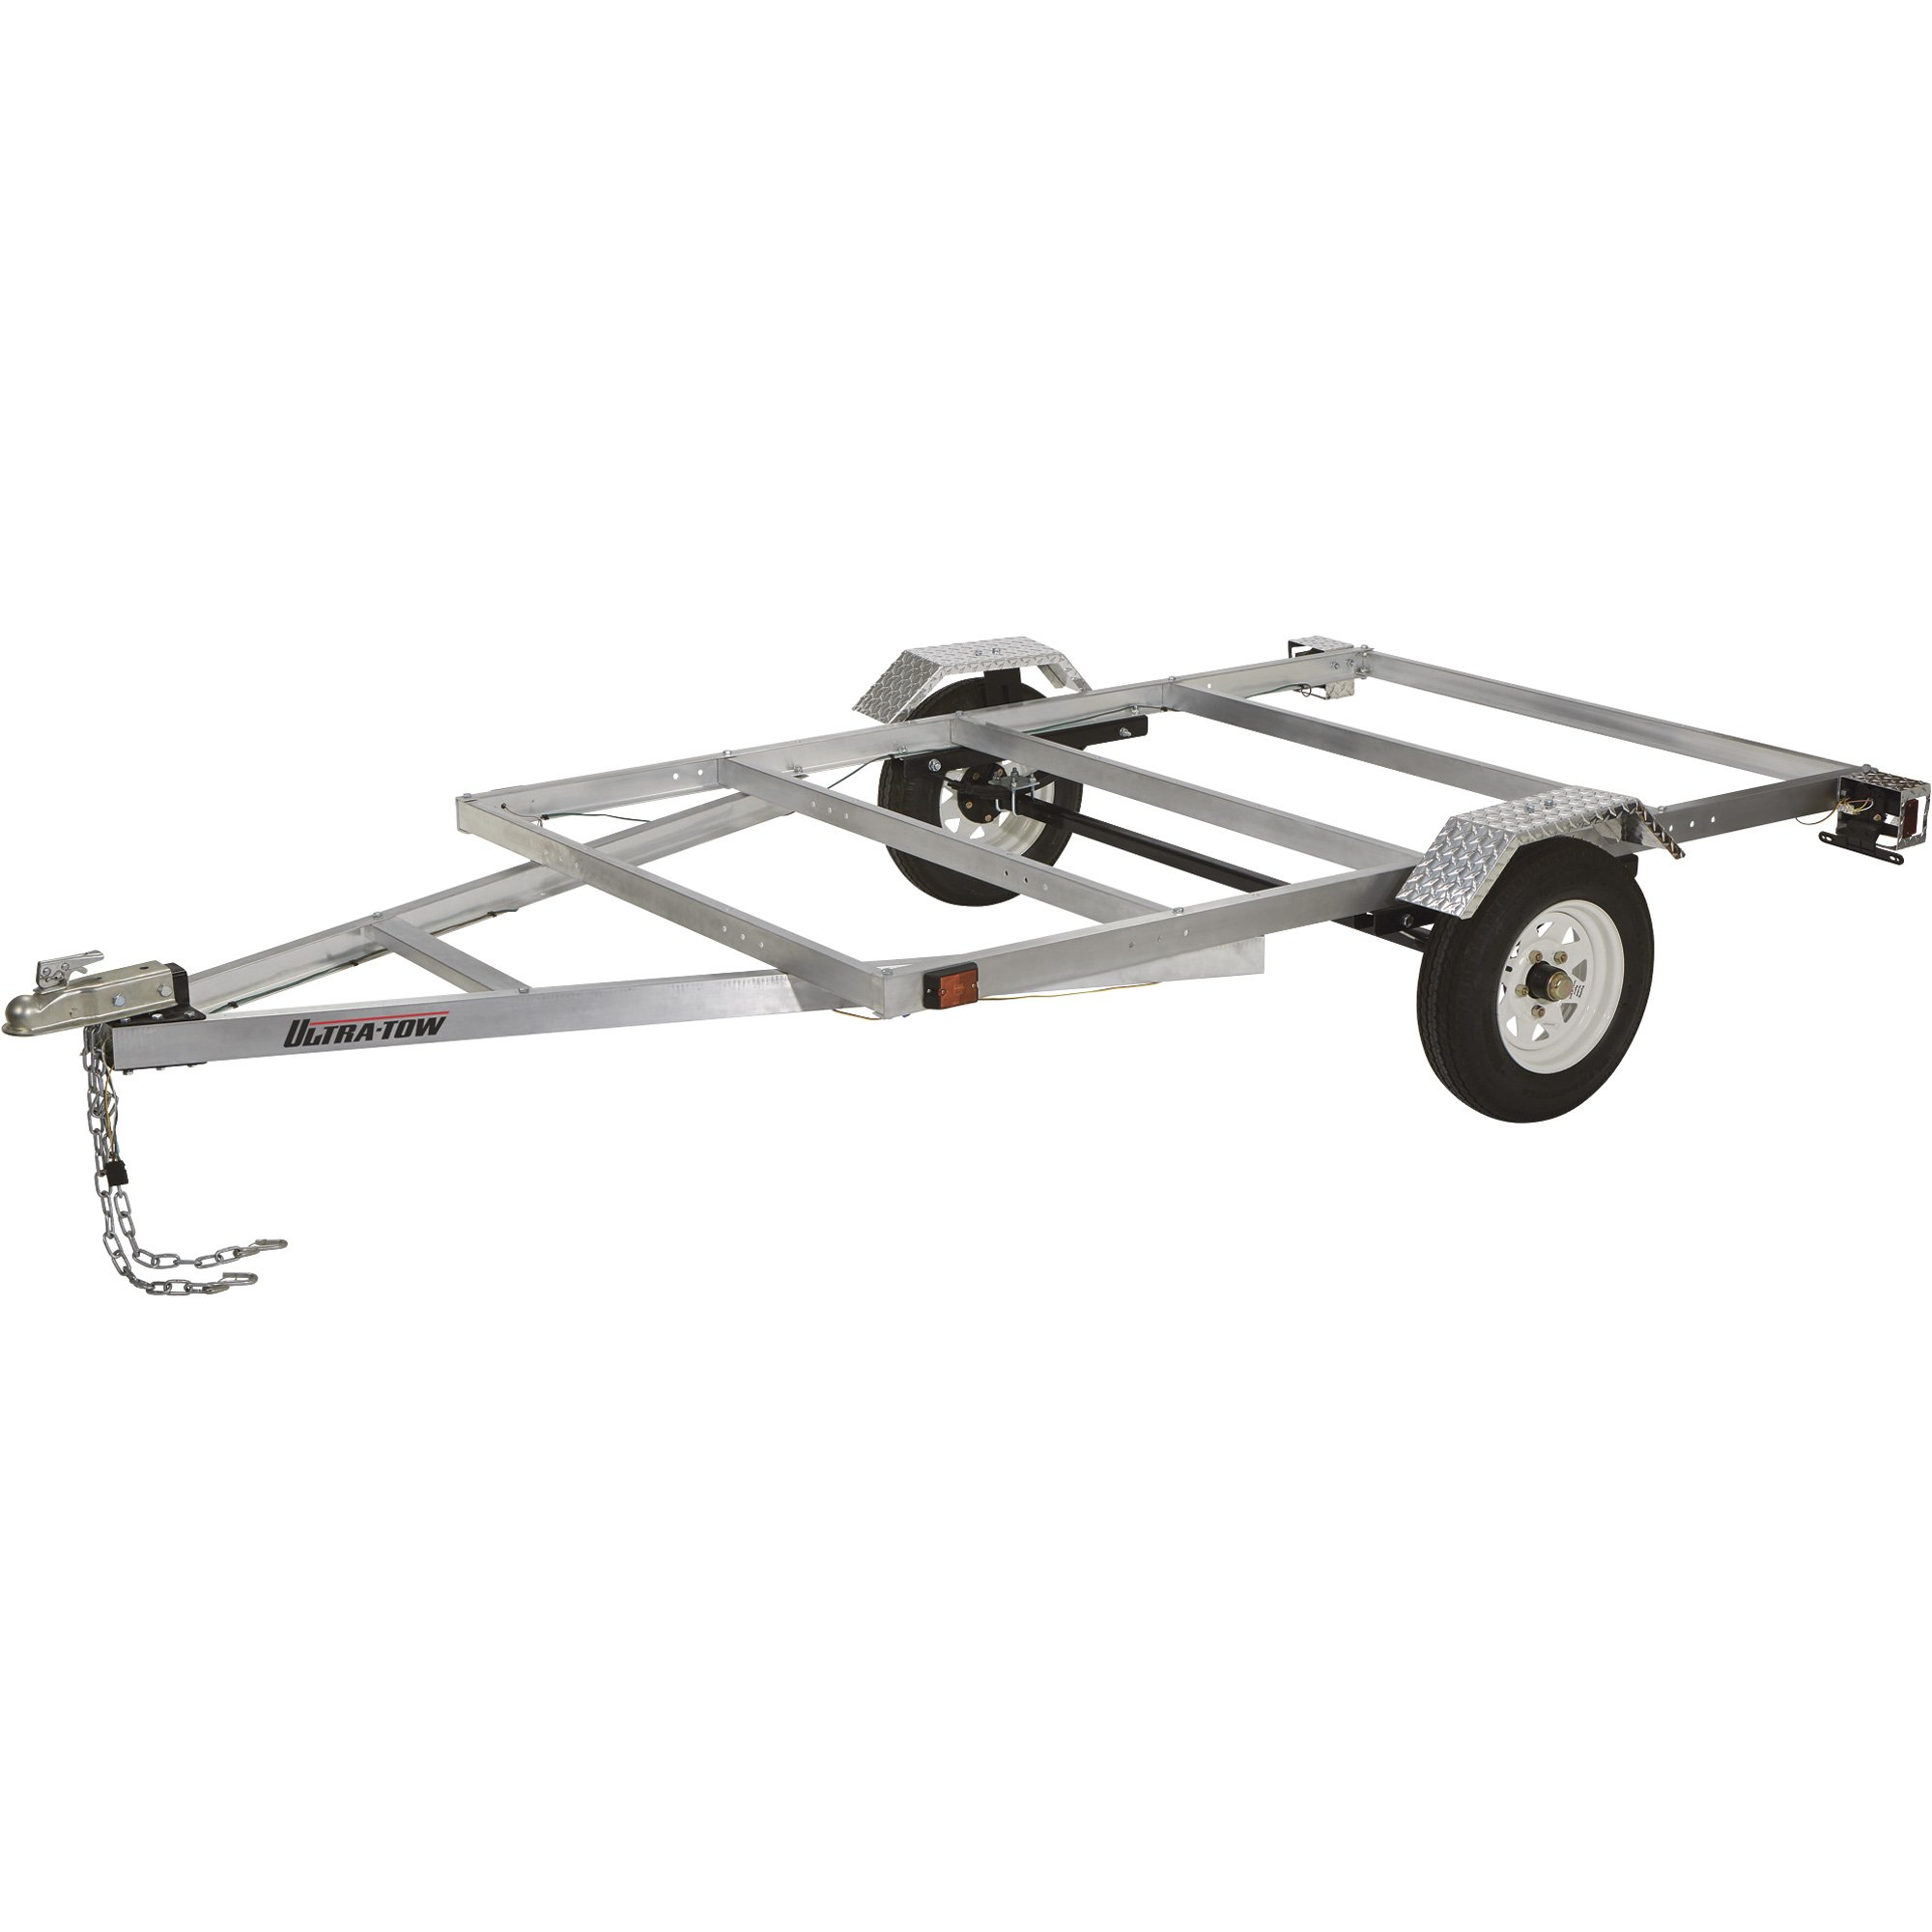 FREE SHIPPING — Ultra-Tow 5ft. x 8ft. Aluminum Utility Trailer Kit ...